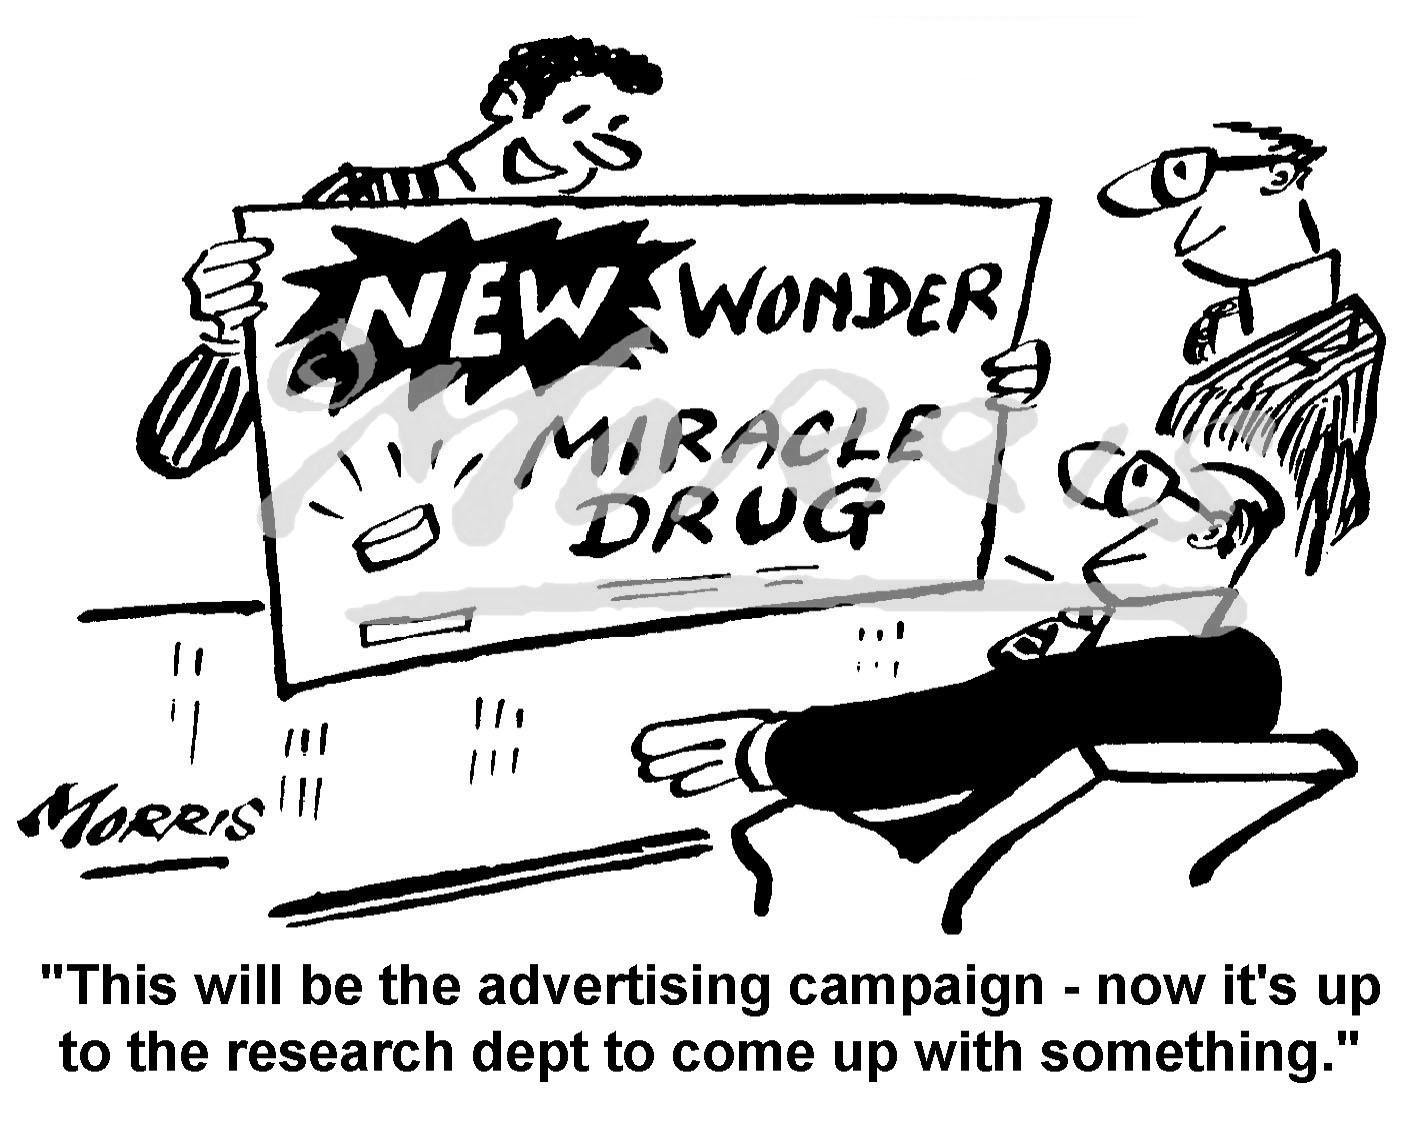 Advertising campaign business cartoon – Ref: 2161bw